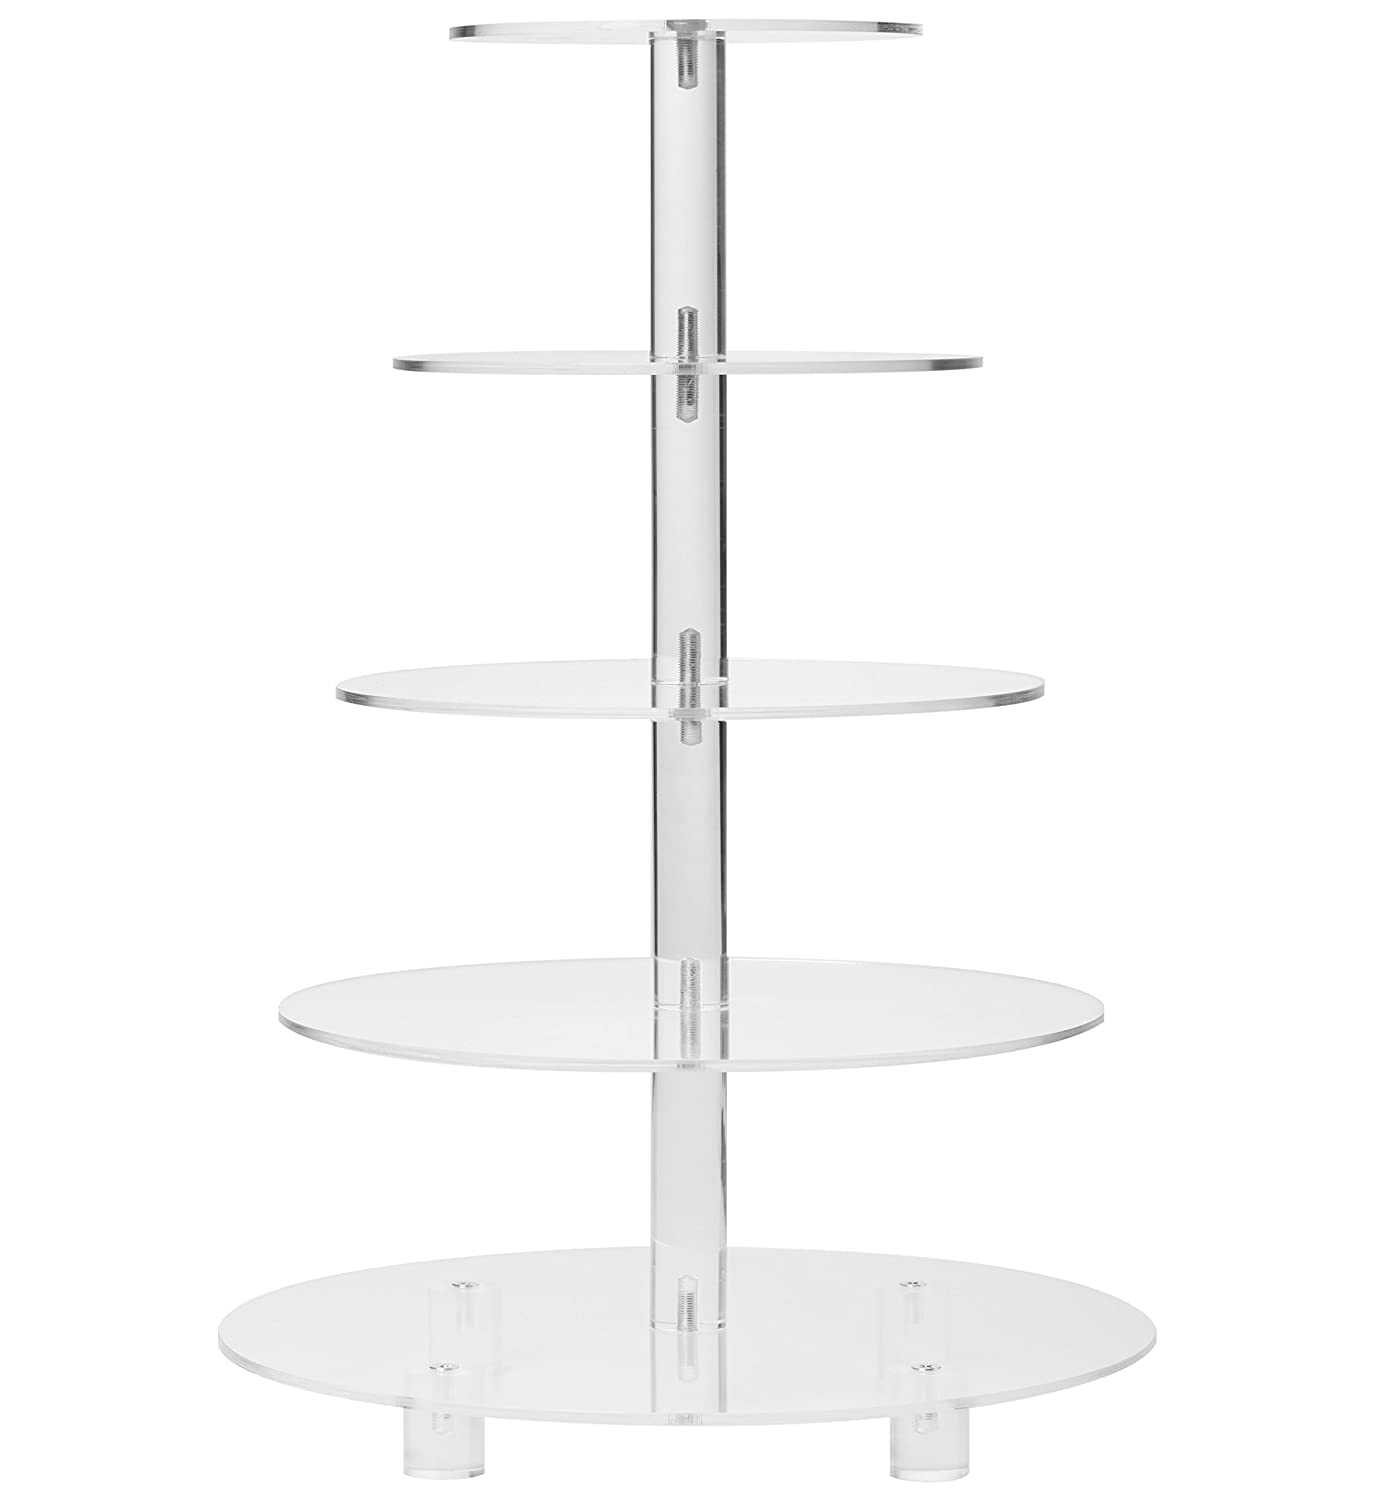 YestBuy 5 Tier Round Wedding Party Acrylic Cake Cupcake Tree Tower Maypole Display Stand 1 pc/Pack Yest Baking Ltd 501RS-2